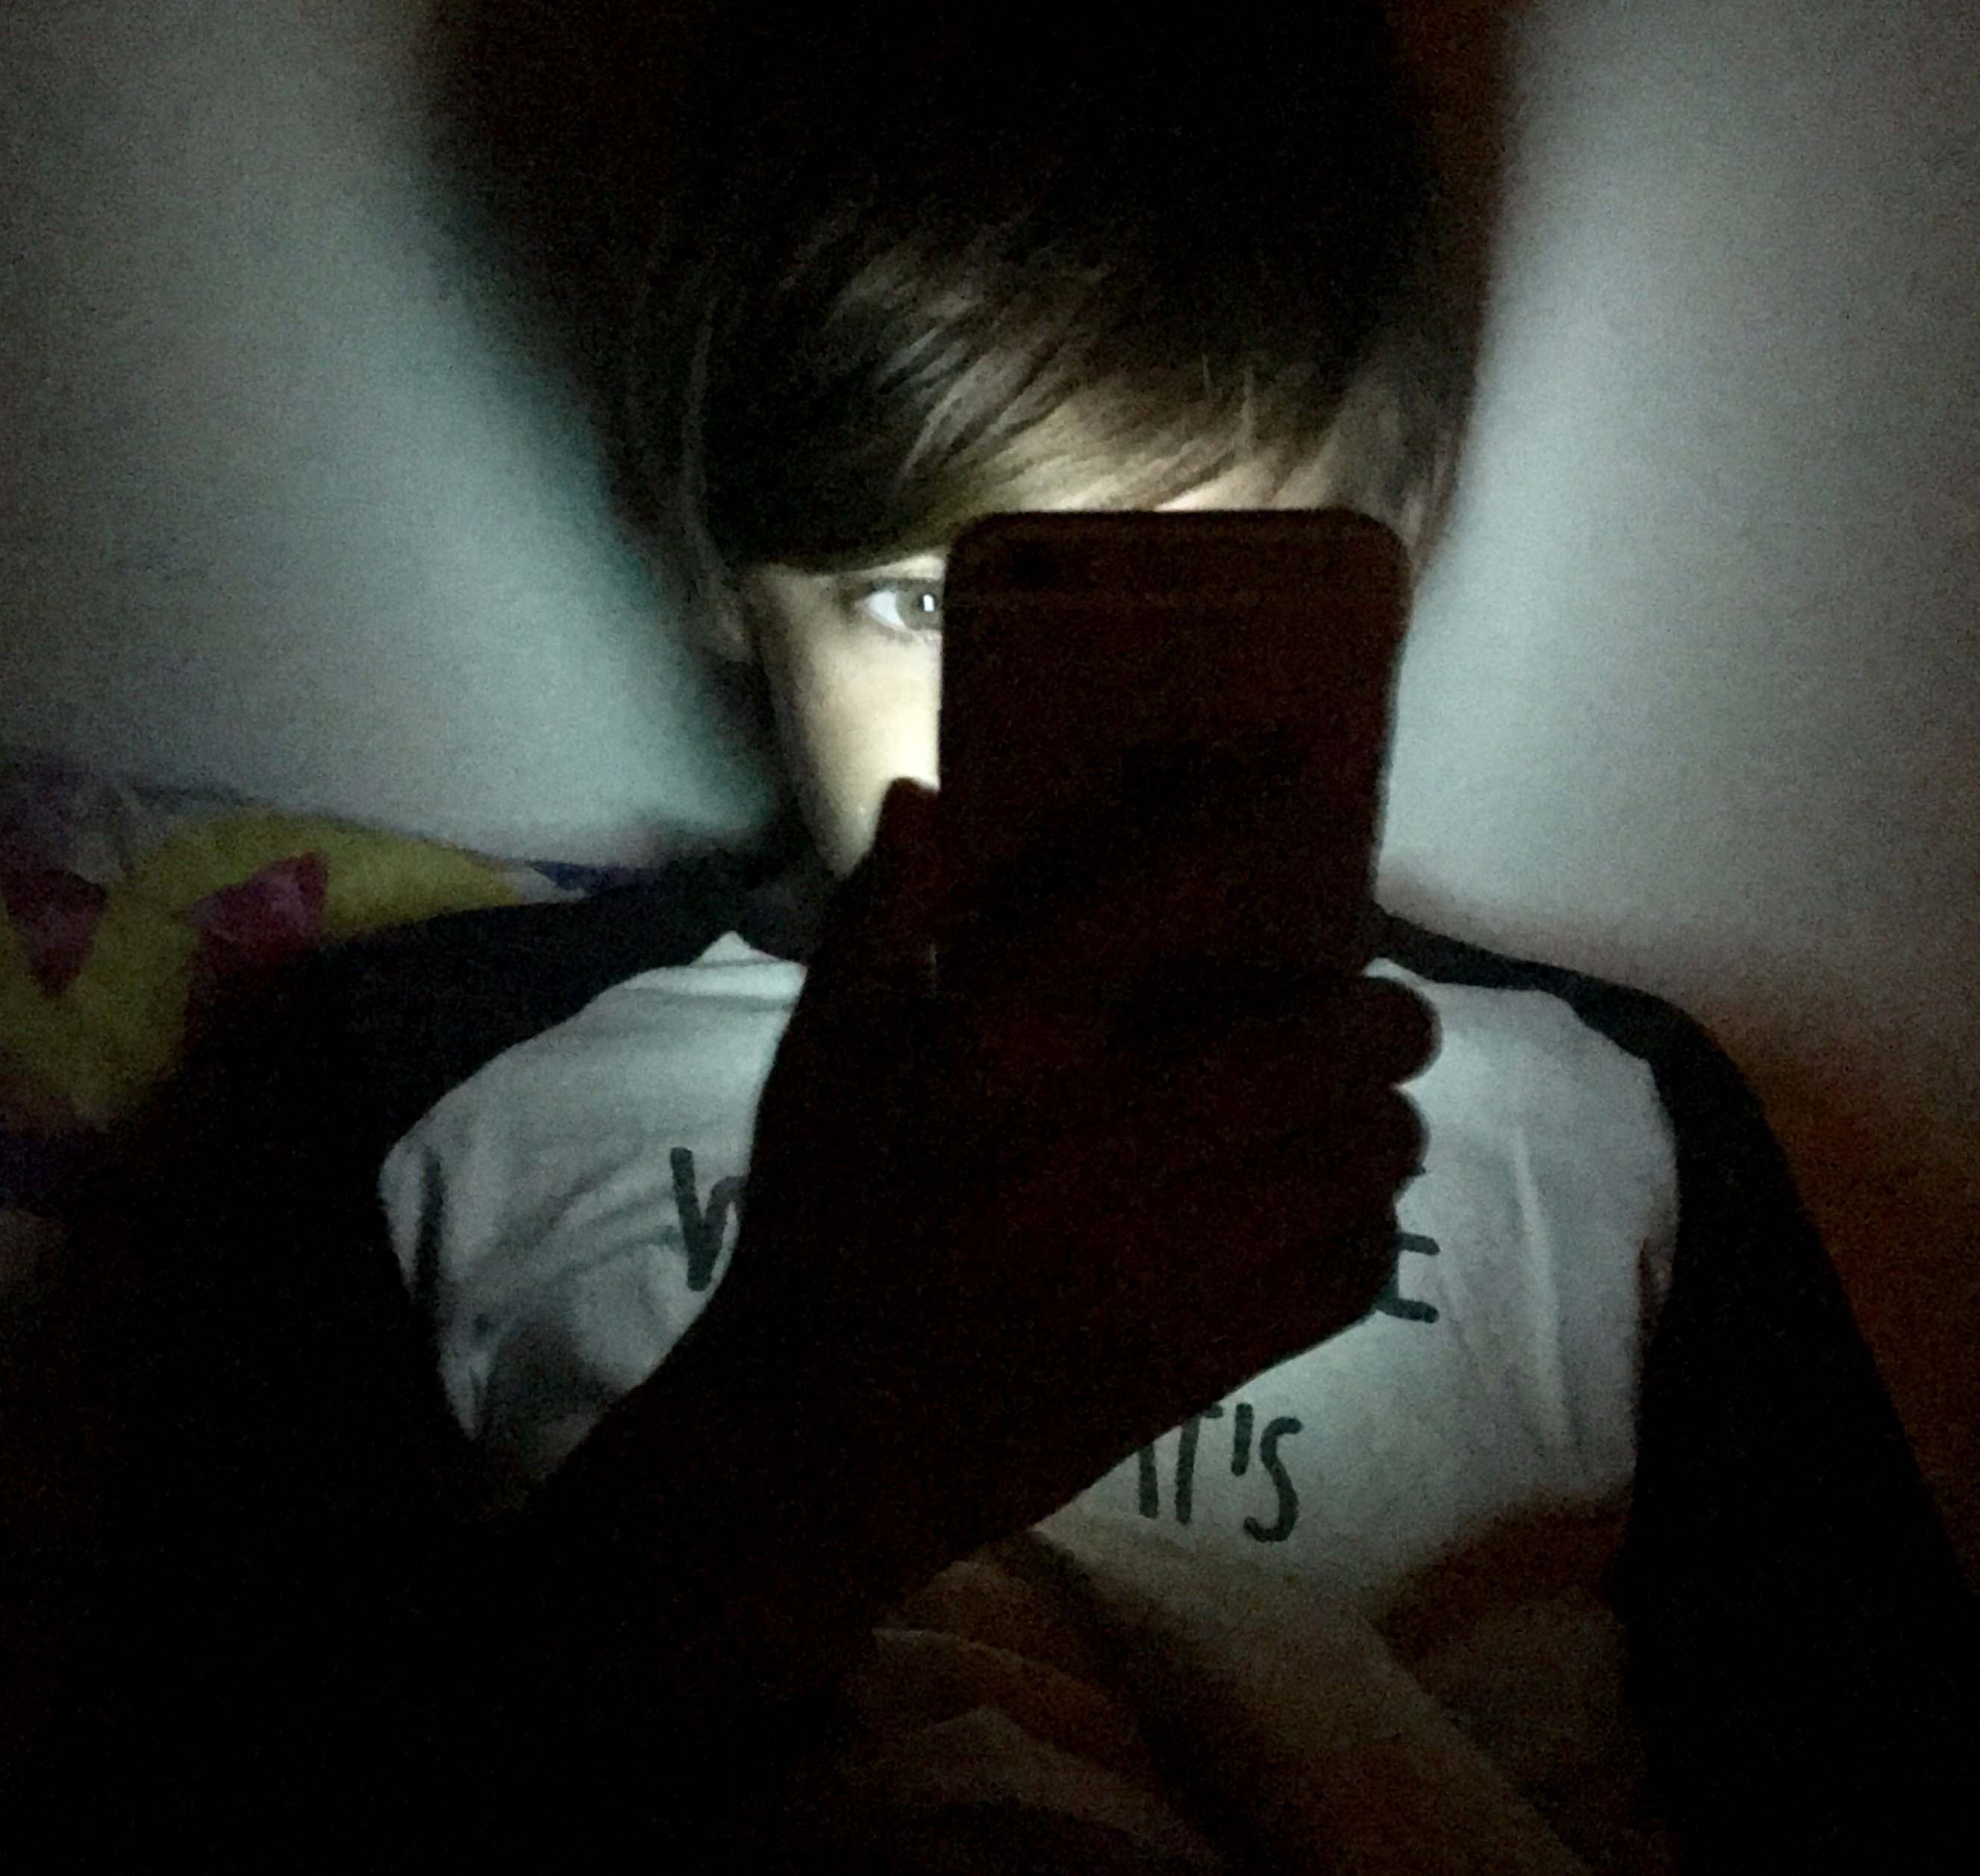 Boy using mobile phone at night